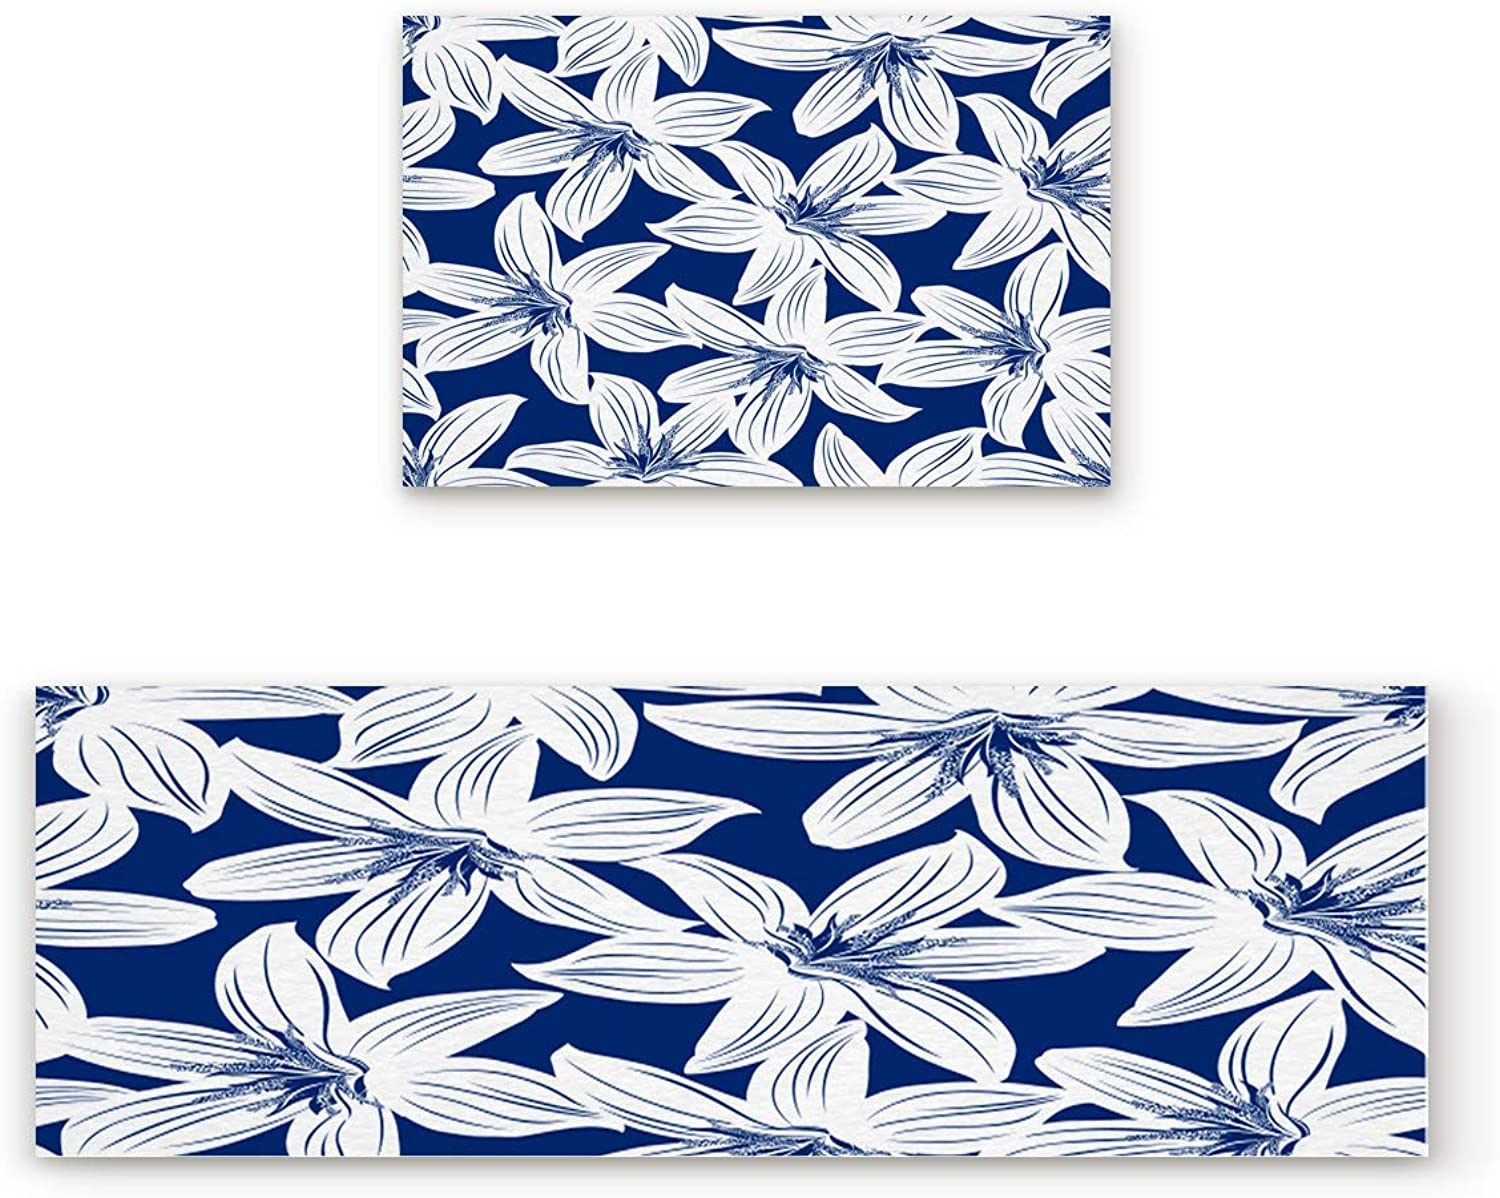 Aomike 2 Piece Non-Slip Kitchen Mat Rubber Backing Doormat bluee and White Flower Runner Rug Set, Hallway Living Room Balcony Bathroom Carpet Sets (19.7  x 31.5 +19.7  x 47.2 )